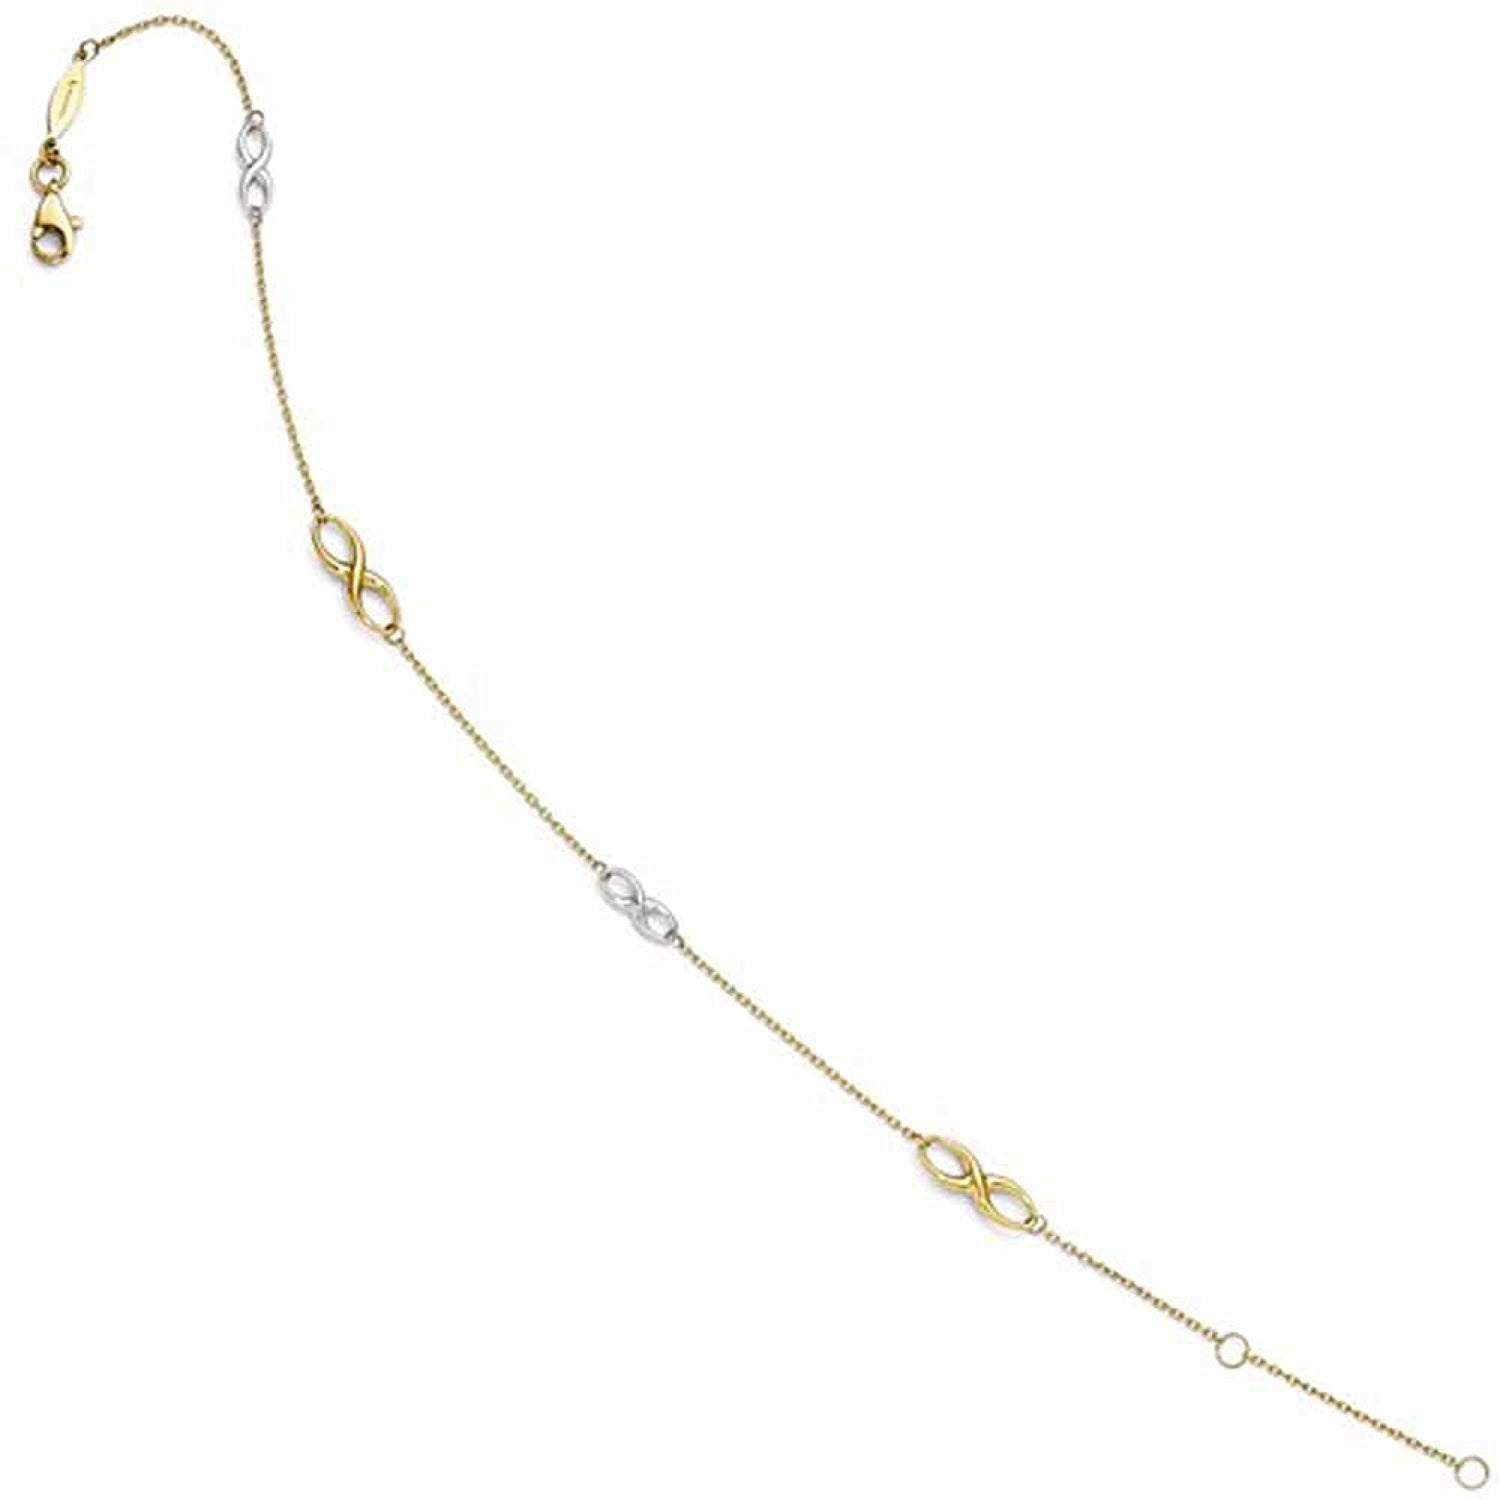 14k Gold Two Tone Infinity Anklet 9 inches plus Extender